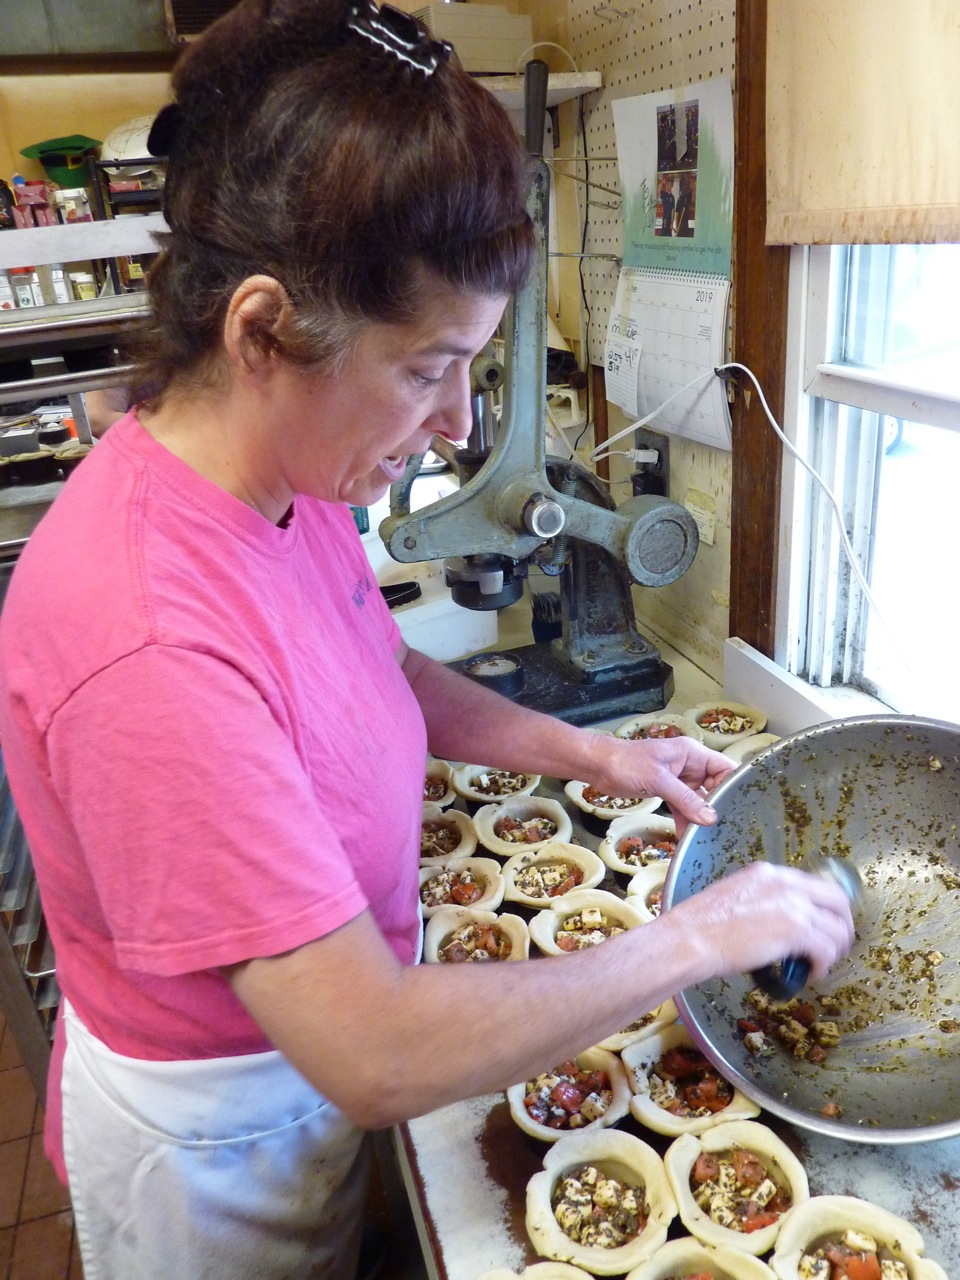 Michelle Rothwell makes a Tomato Job Pie (a Caprese salad put into a pie) at Thwaites Market in Methuen, Mass.